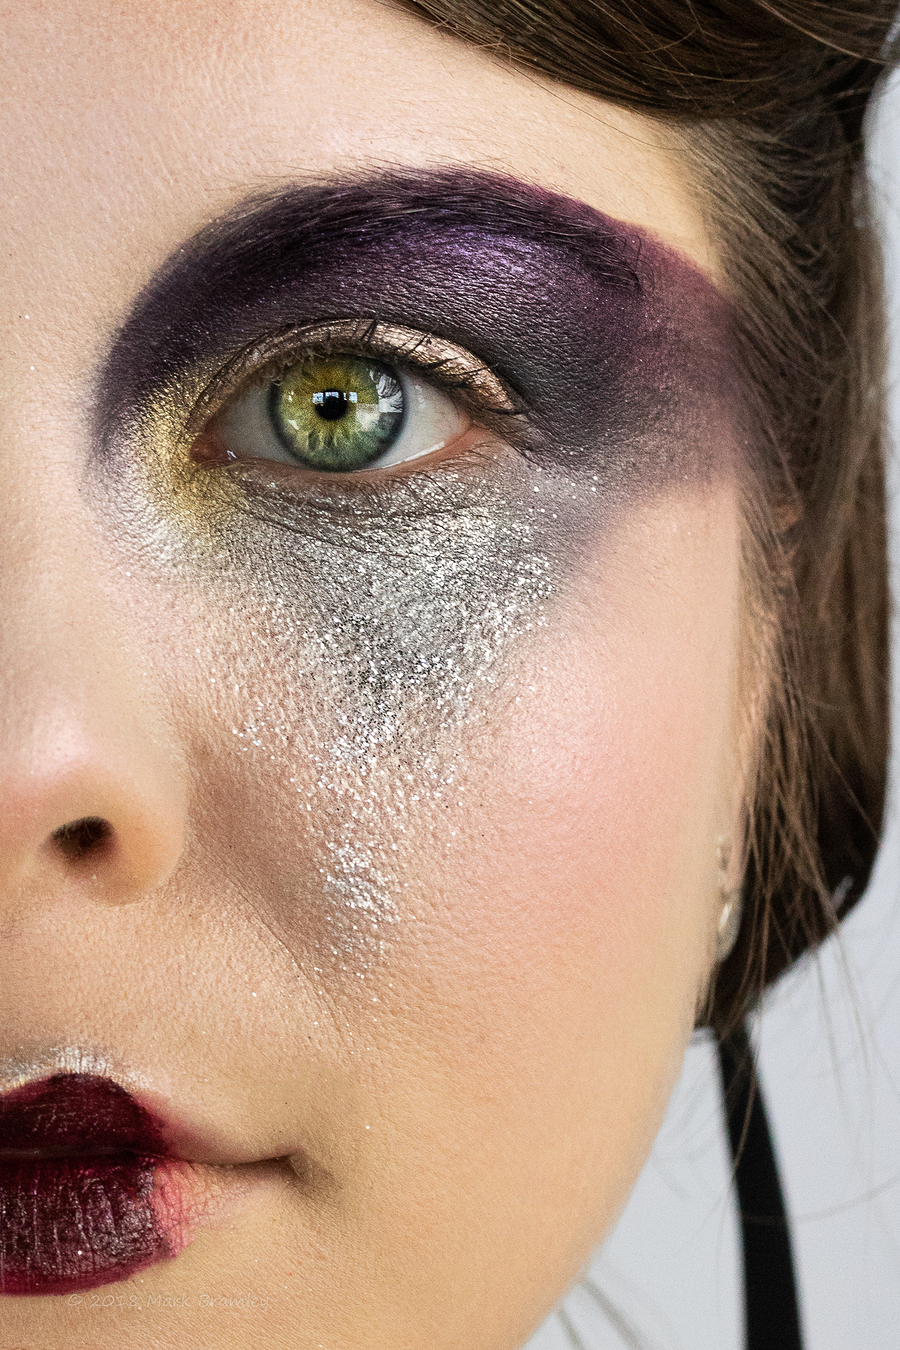 'Dark Beauty' Couture Creature / Makeup by SkulledRabbitFX, Taken at SS Creative Photography / Uploaded 11th May 2018 @ 06:26 PM